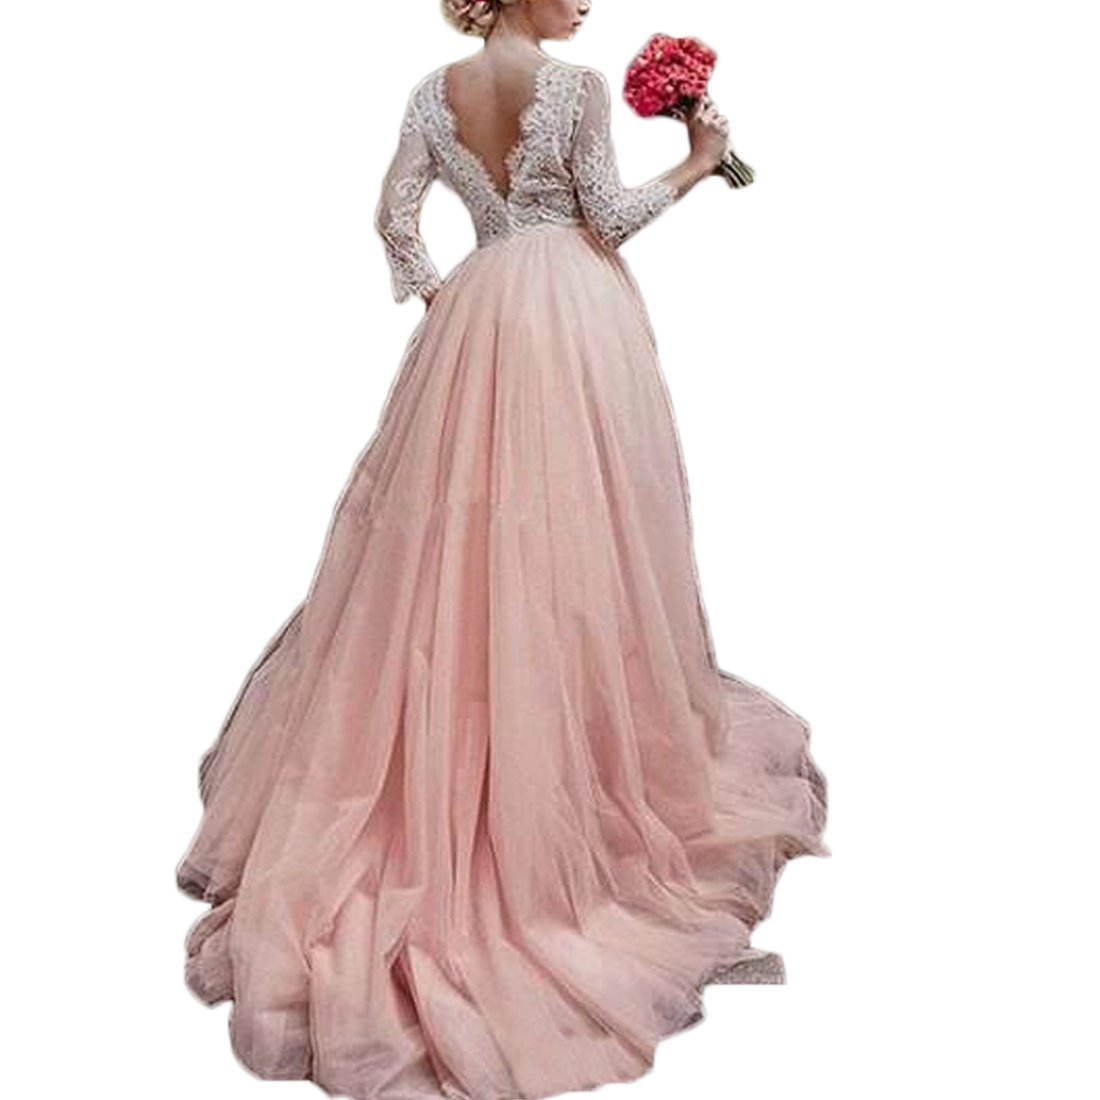 Thrsaeyi Womens Blush Long Sleeves Wedding Dresses V Neck Beach Wedding Gowns for Bridal 2018 Lace Boho Bridal Gown at Amazon Womens Clothing store: